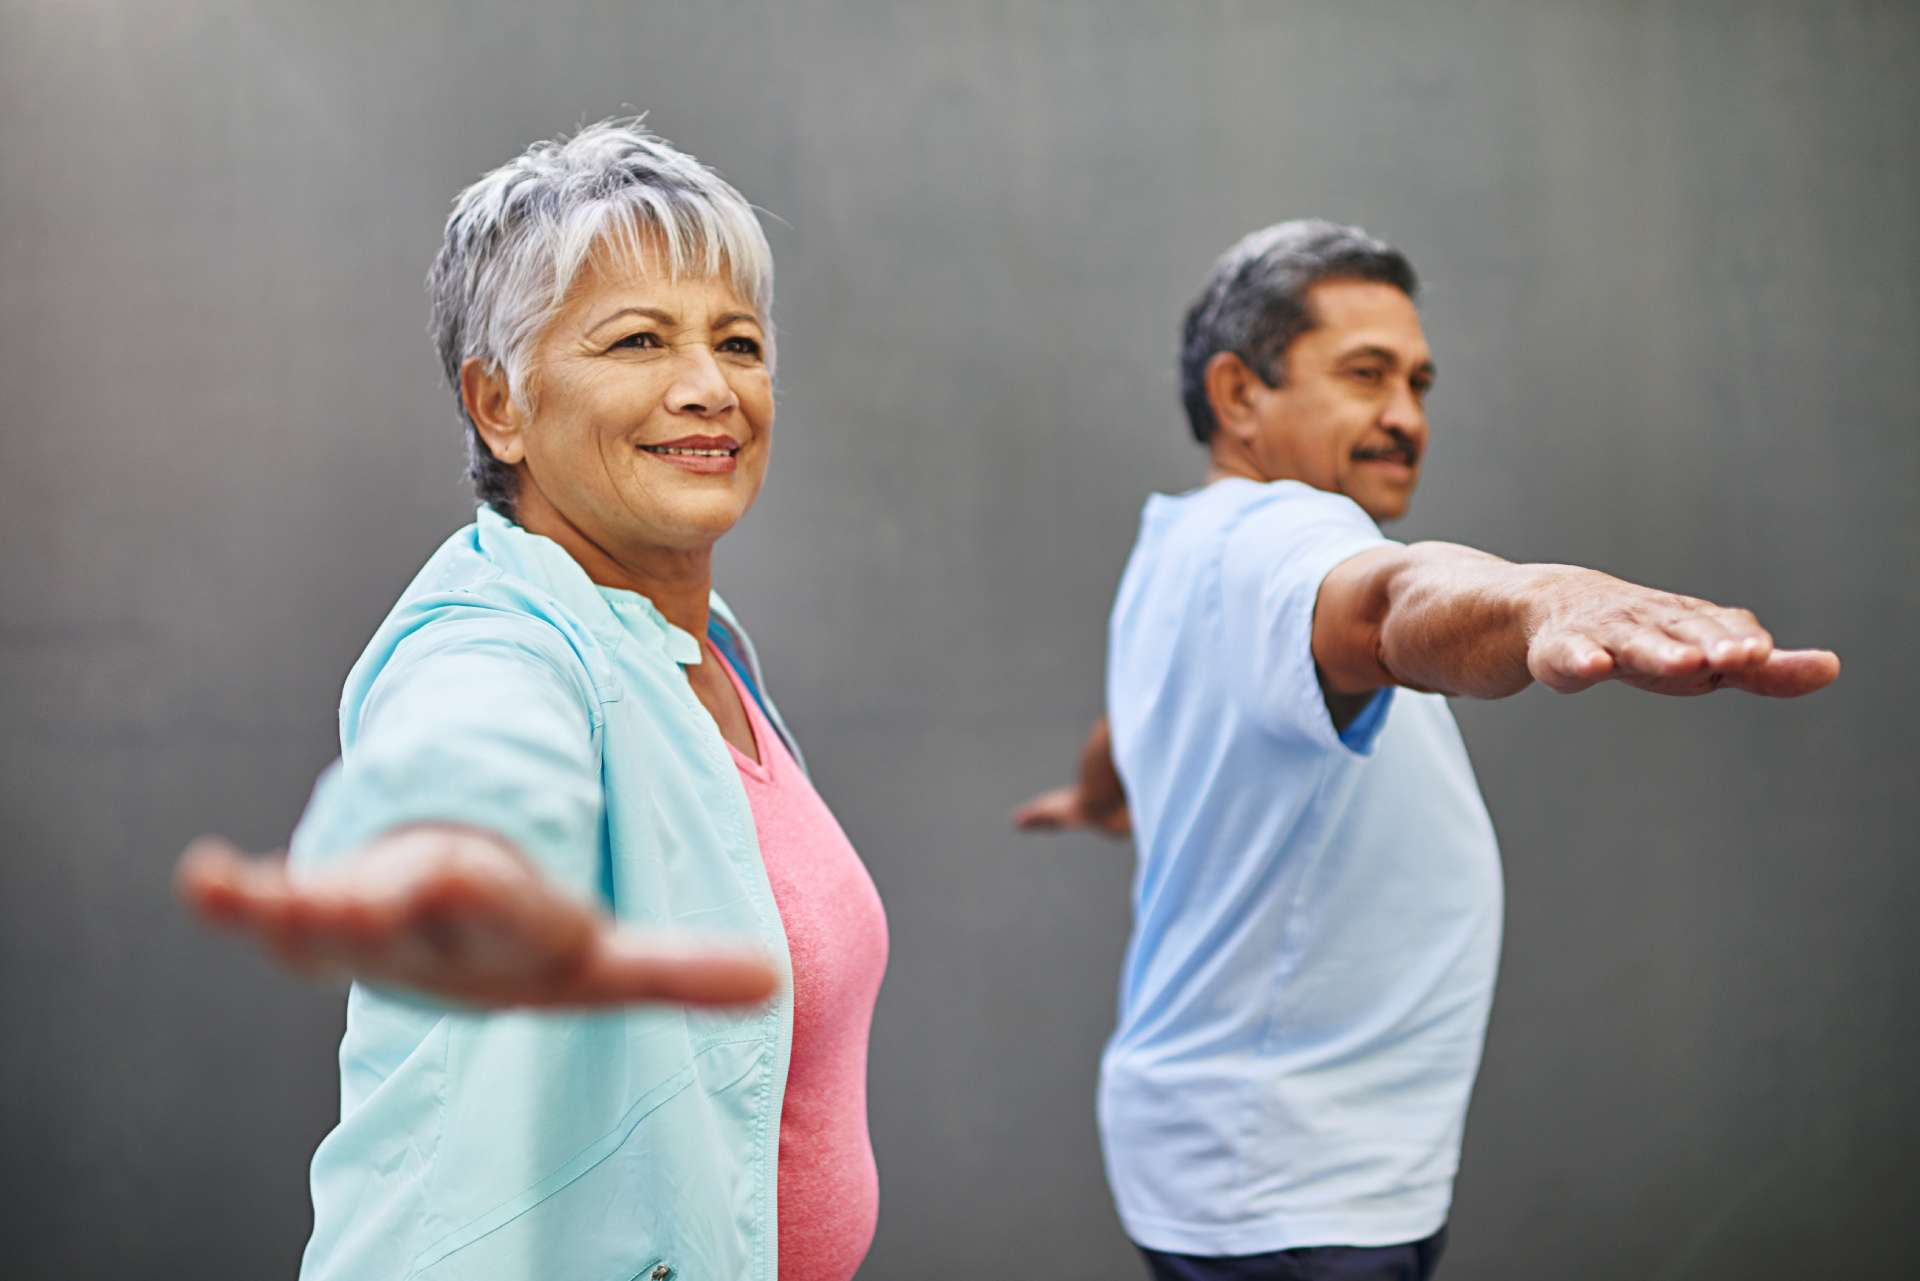 Two seniors exercise